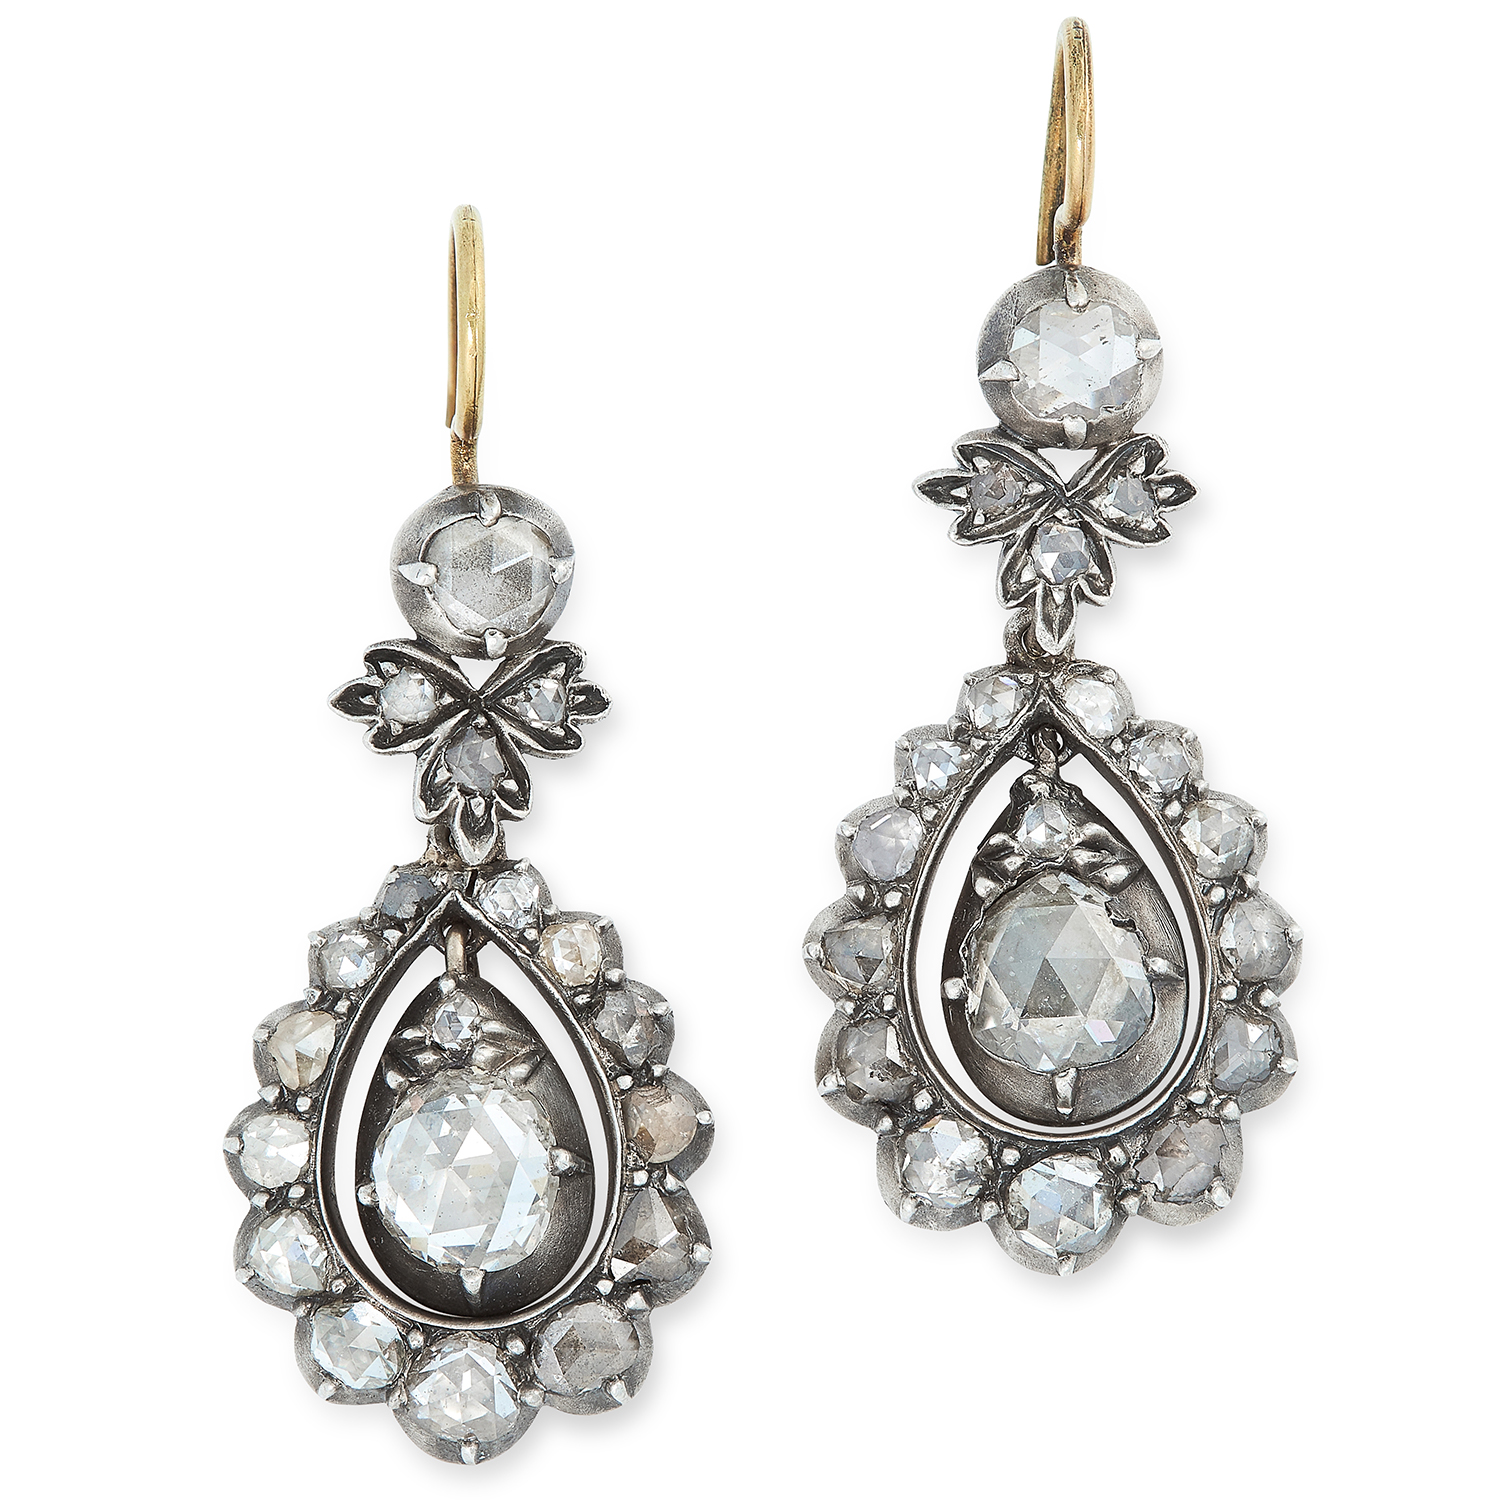 Los 21 - A PAIR OF ANTIQUE DIAMOND DROP EARRINGS set with rose cut diamond drops within a halo of further